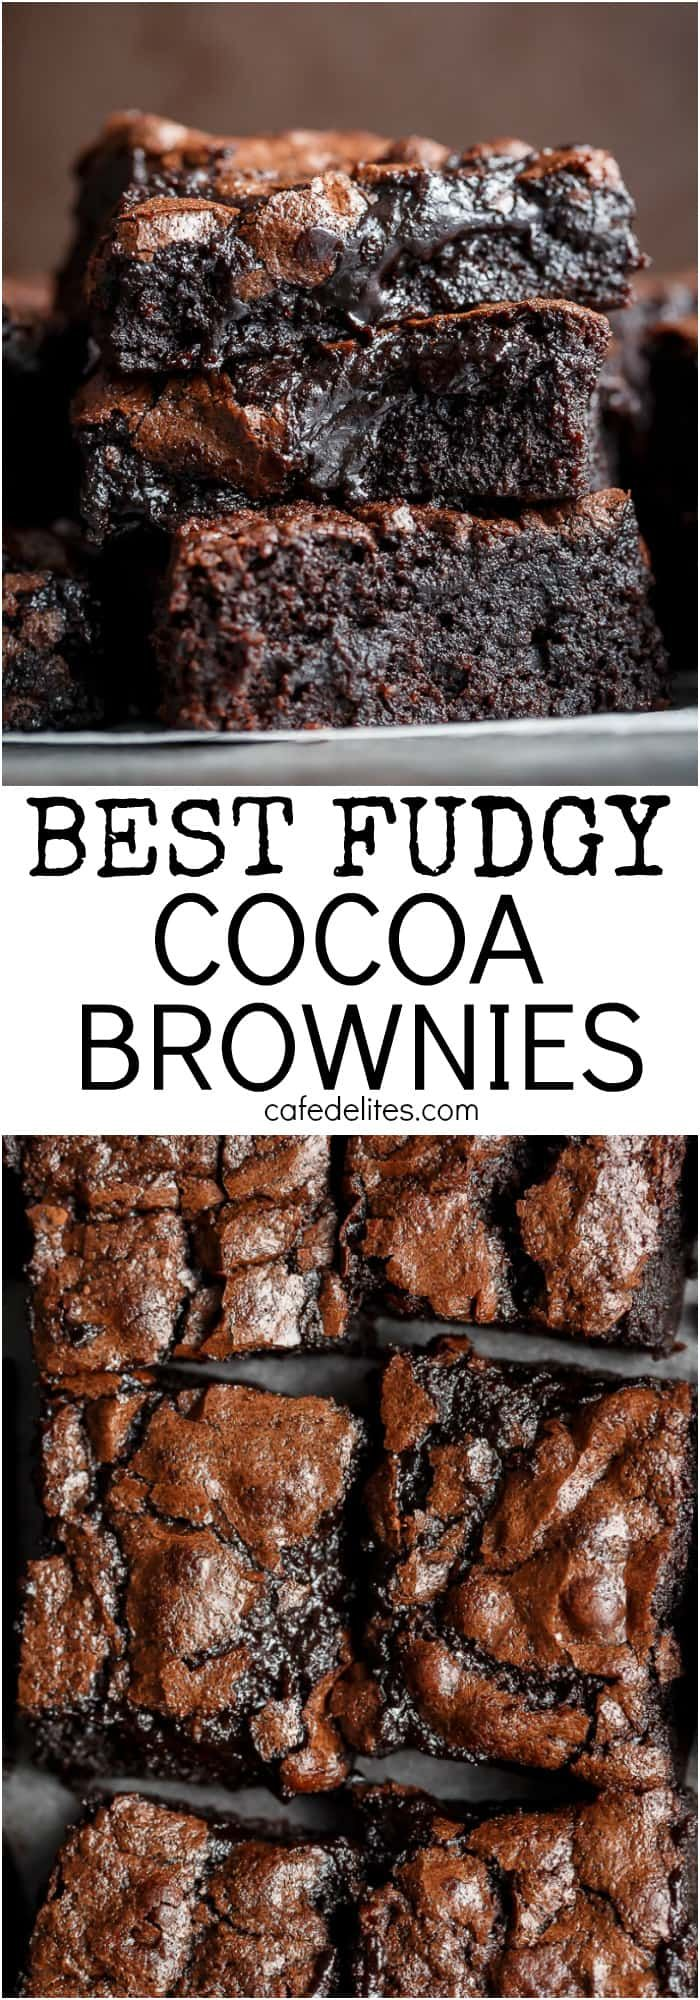 The Best, Fudgy ONE BOWL Cocoa Brownies! A special addition gives these brownies a super fudgy centre without losing that crispy, crackly top! | https://cafedelites.com